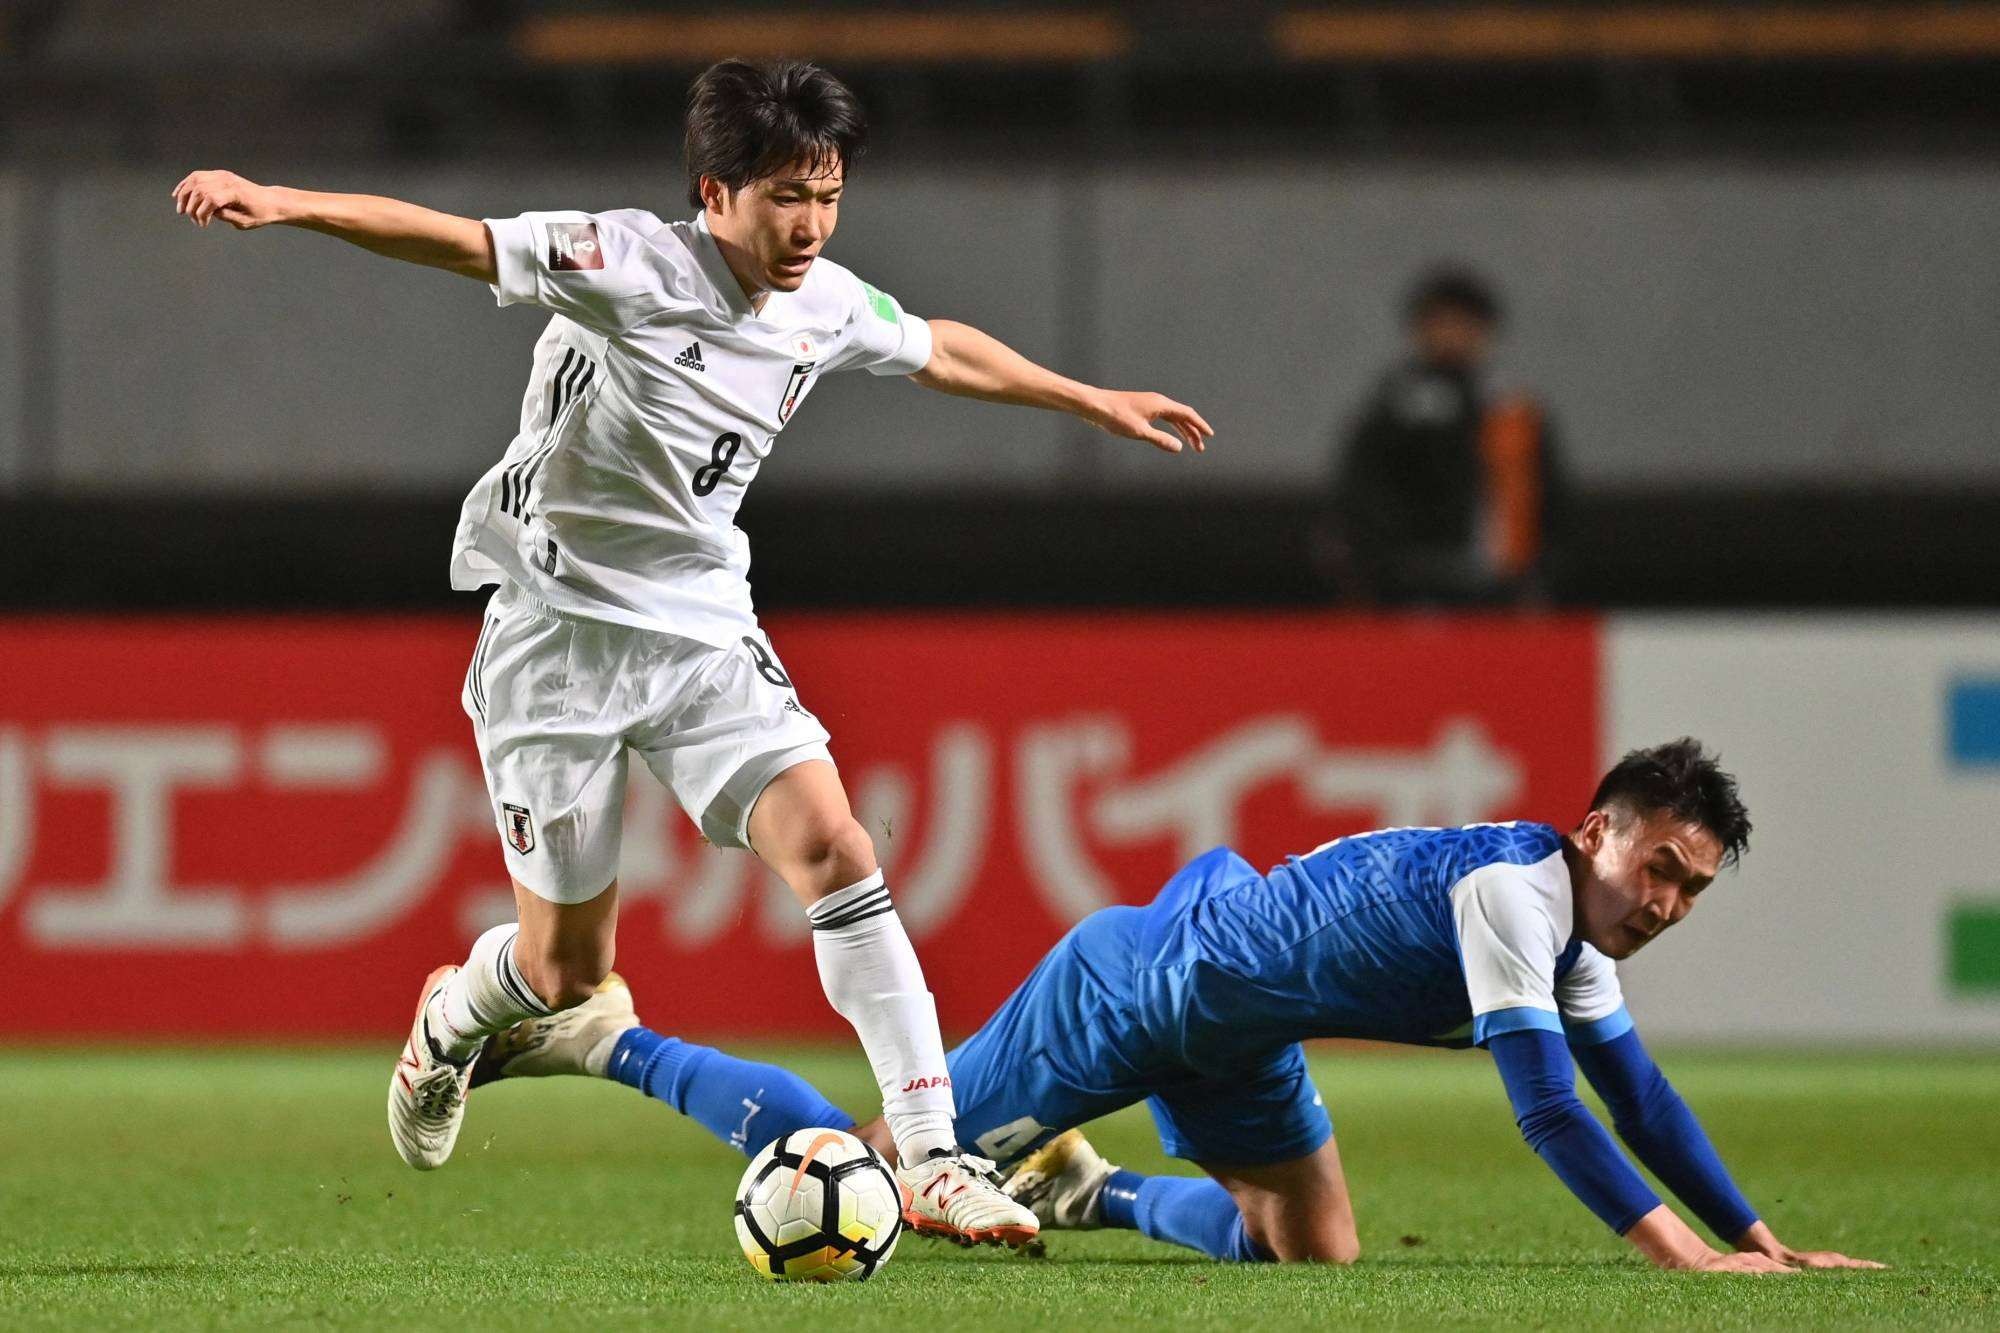 Sho Inagaki (left) contends for the ball with Mongolia's Amaraa Dulguun during a World Cup qualifier in Chiba on Tuesday. | AFP-JIJI